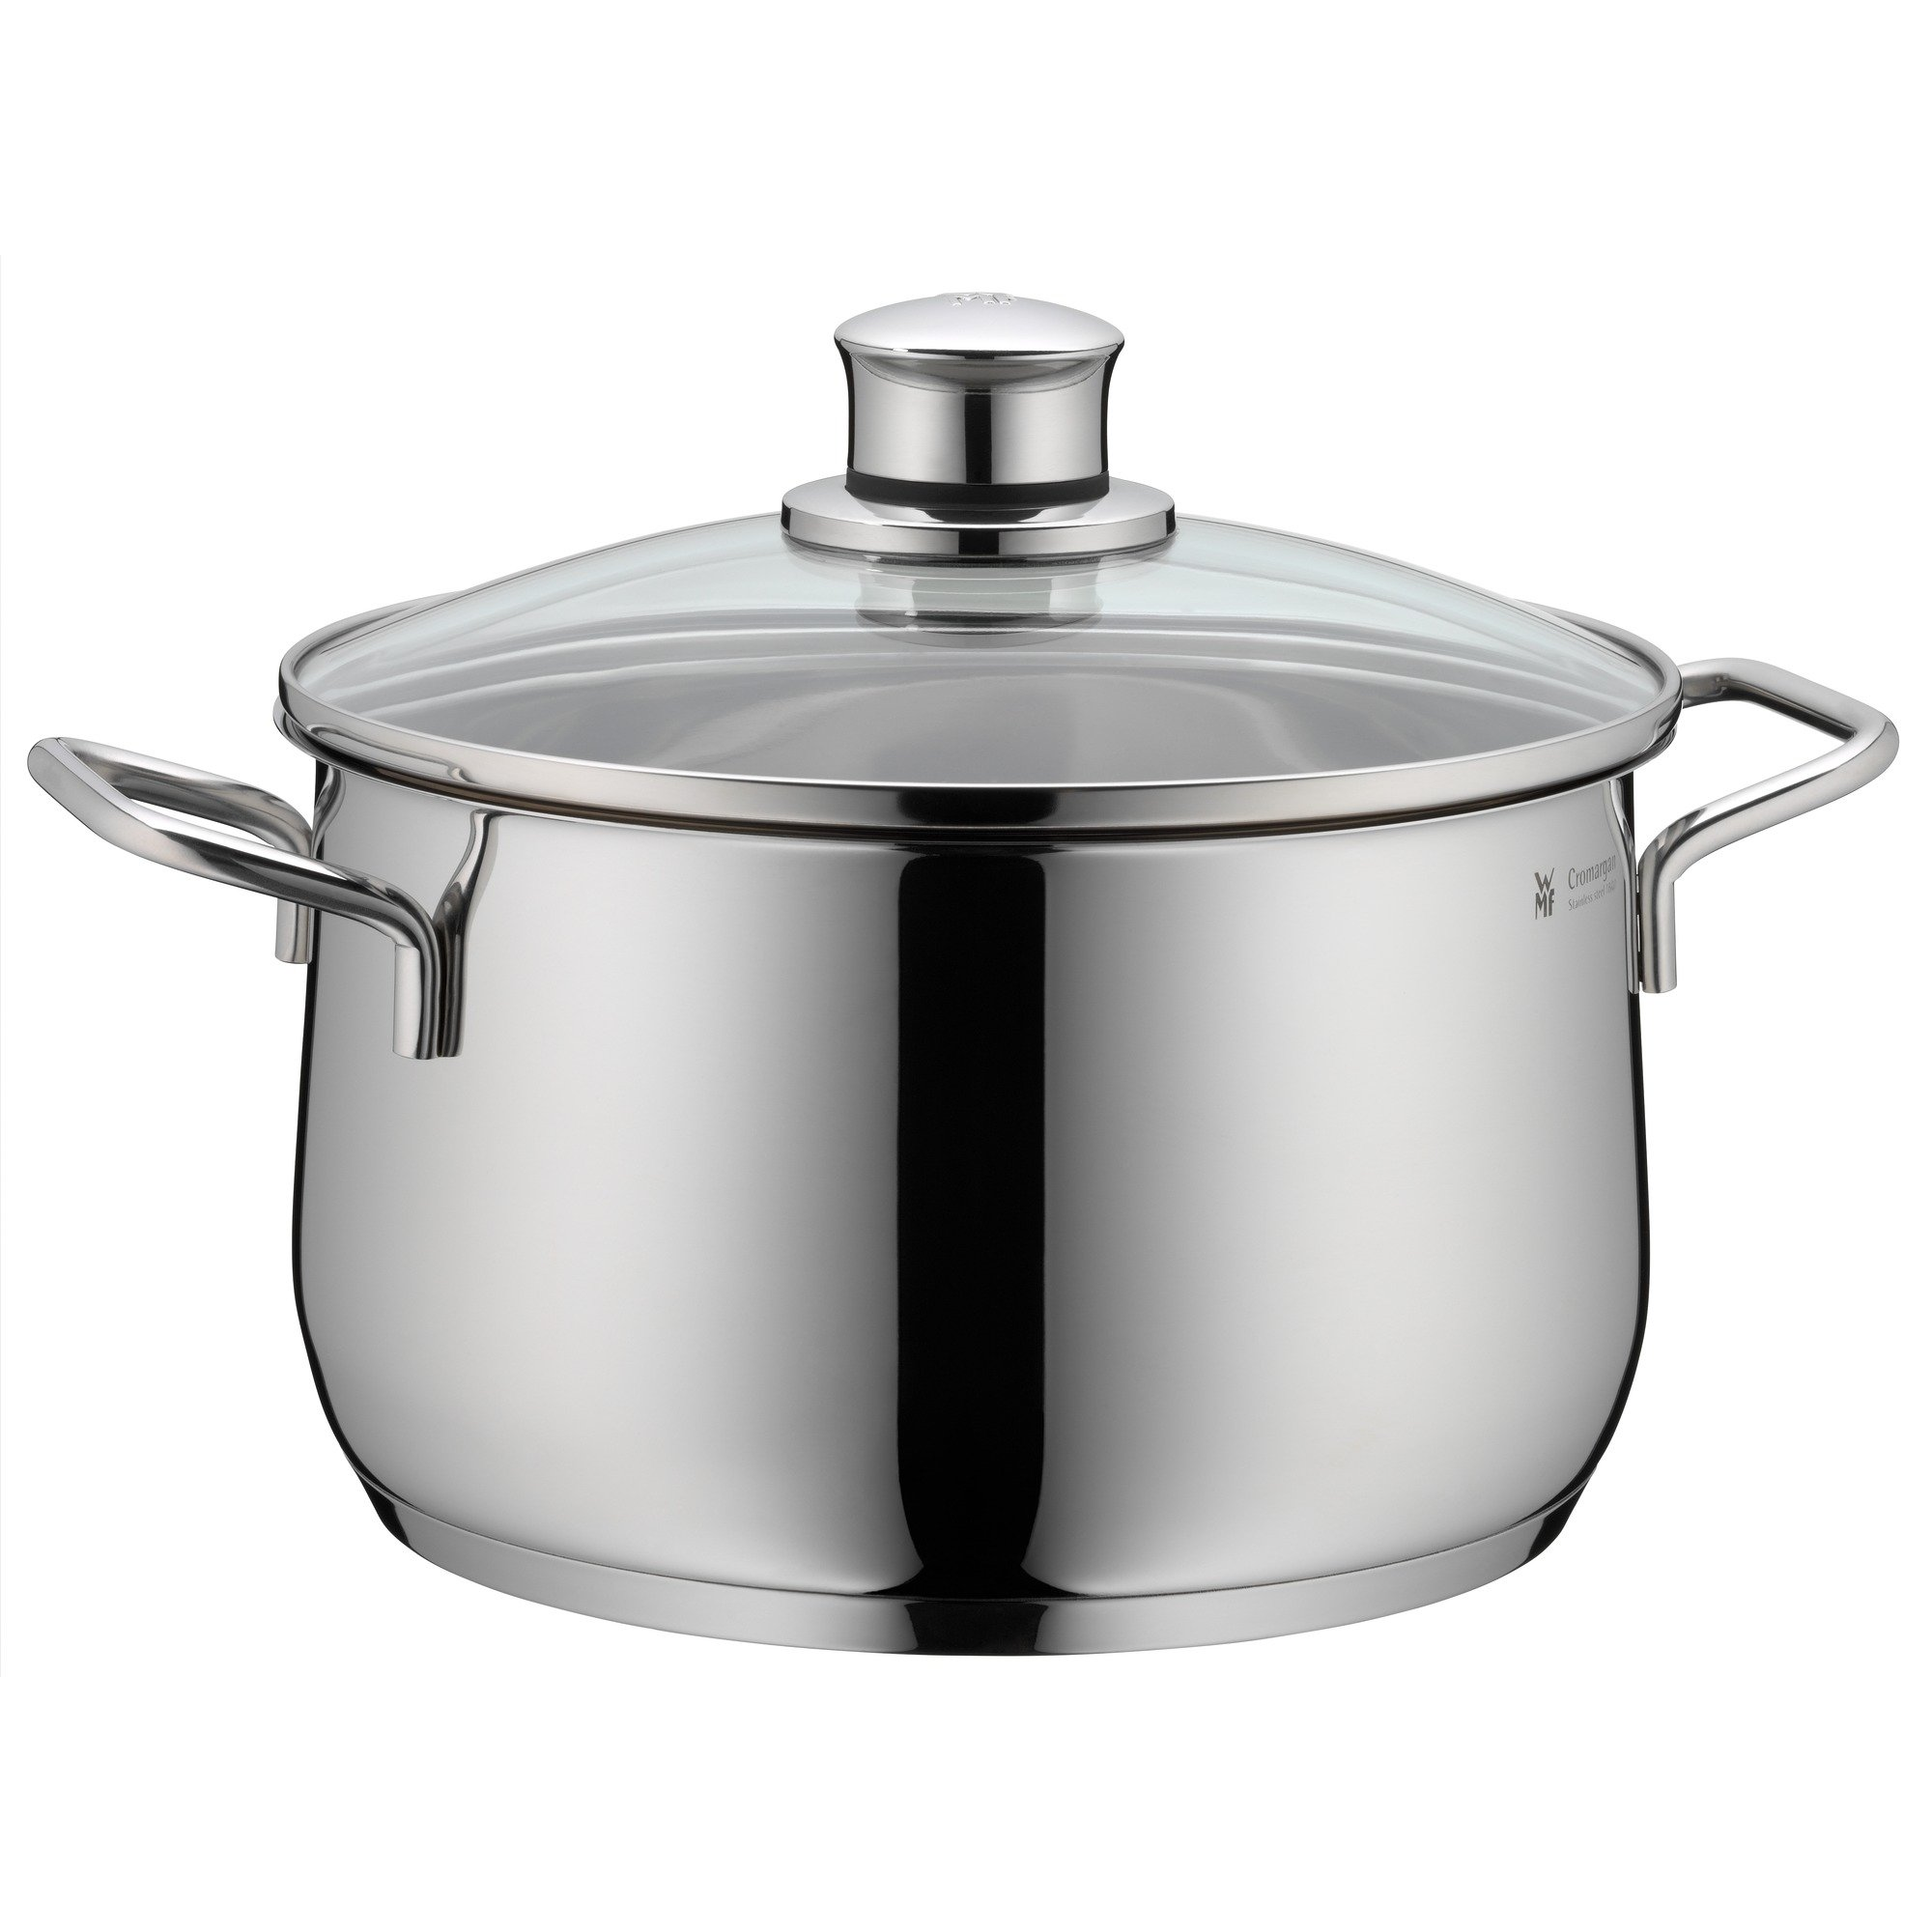 WMF Diadem Plus High Casserole with Lid, 18/10 Stainless